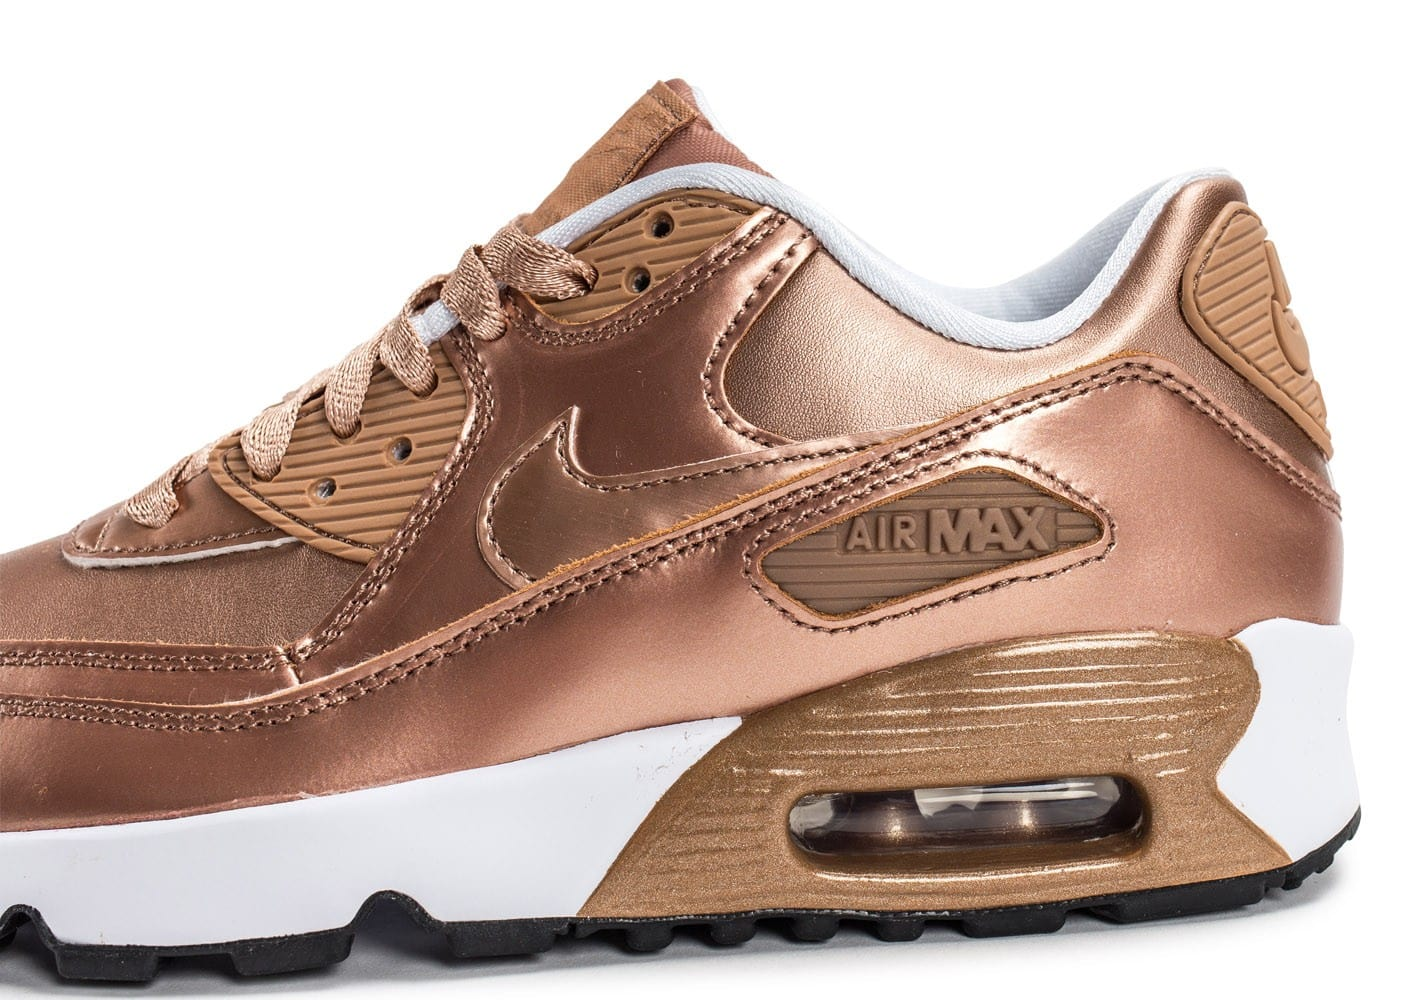 ... Chaussures Nike Air Max 90 SE Leather Metallic Bronze vue dessus